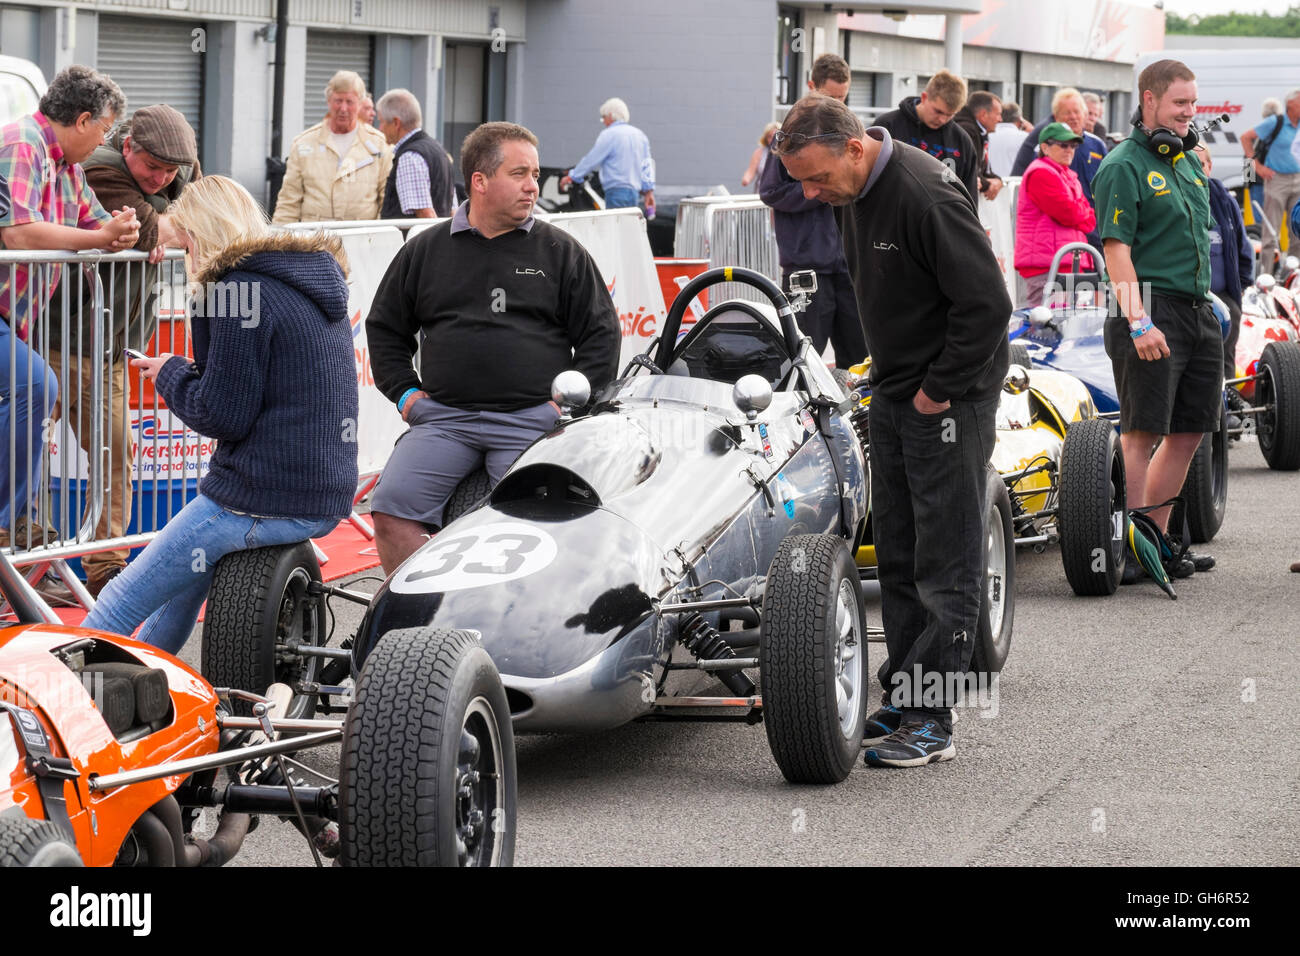 Formula Junior racing cars lined up in the paddock, 2016 Silverstone Classic event, England, UK - Stock Image